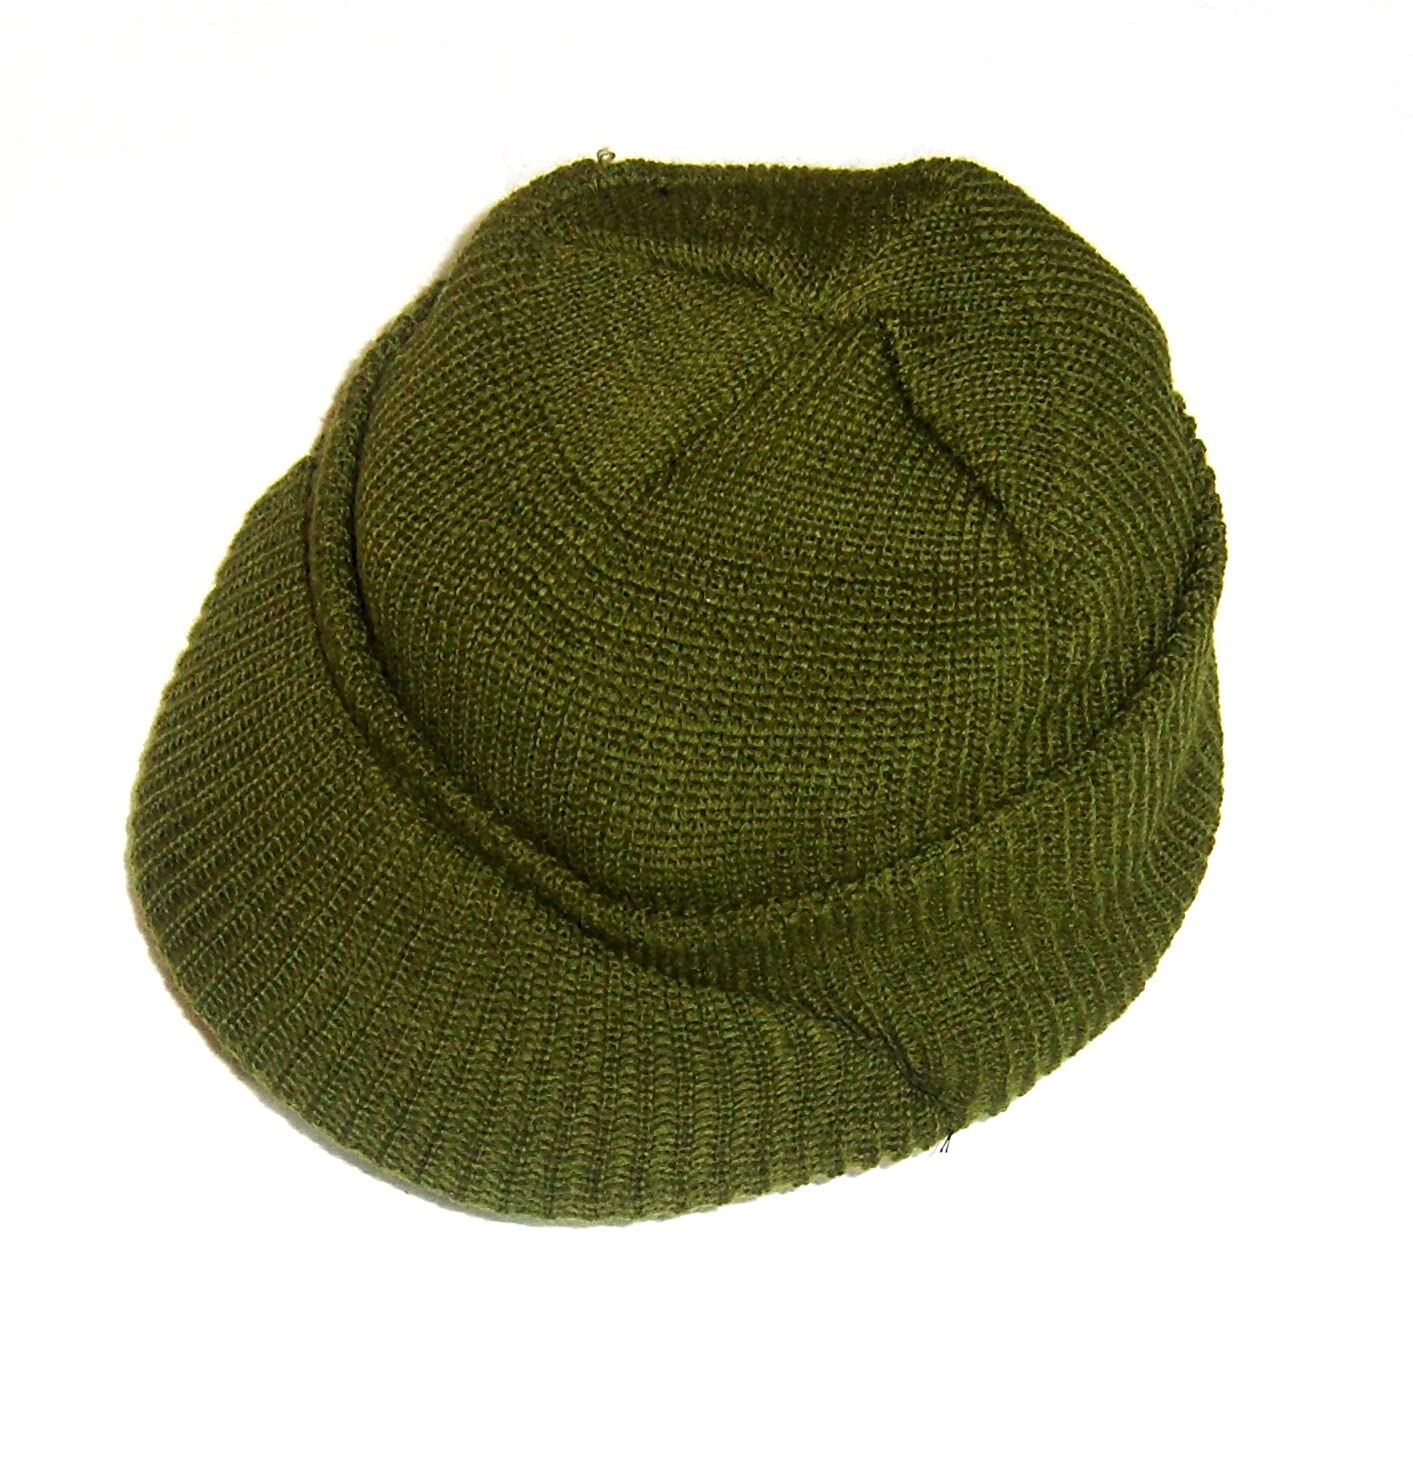 Amazon.com  US Army Wool Military Jeep Cap Hat  Skull Caps  Clothing 1424424f9a